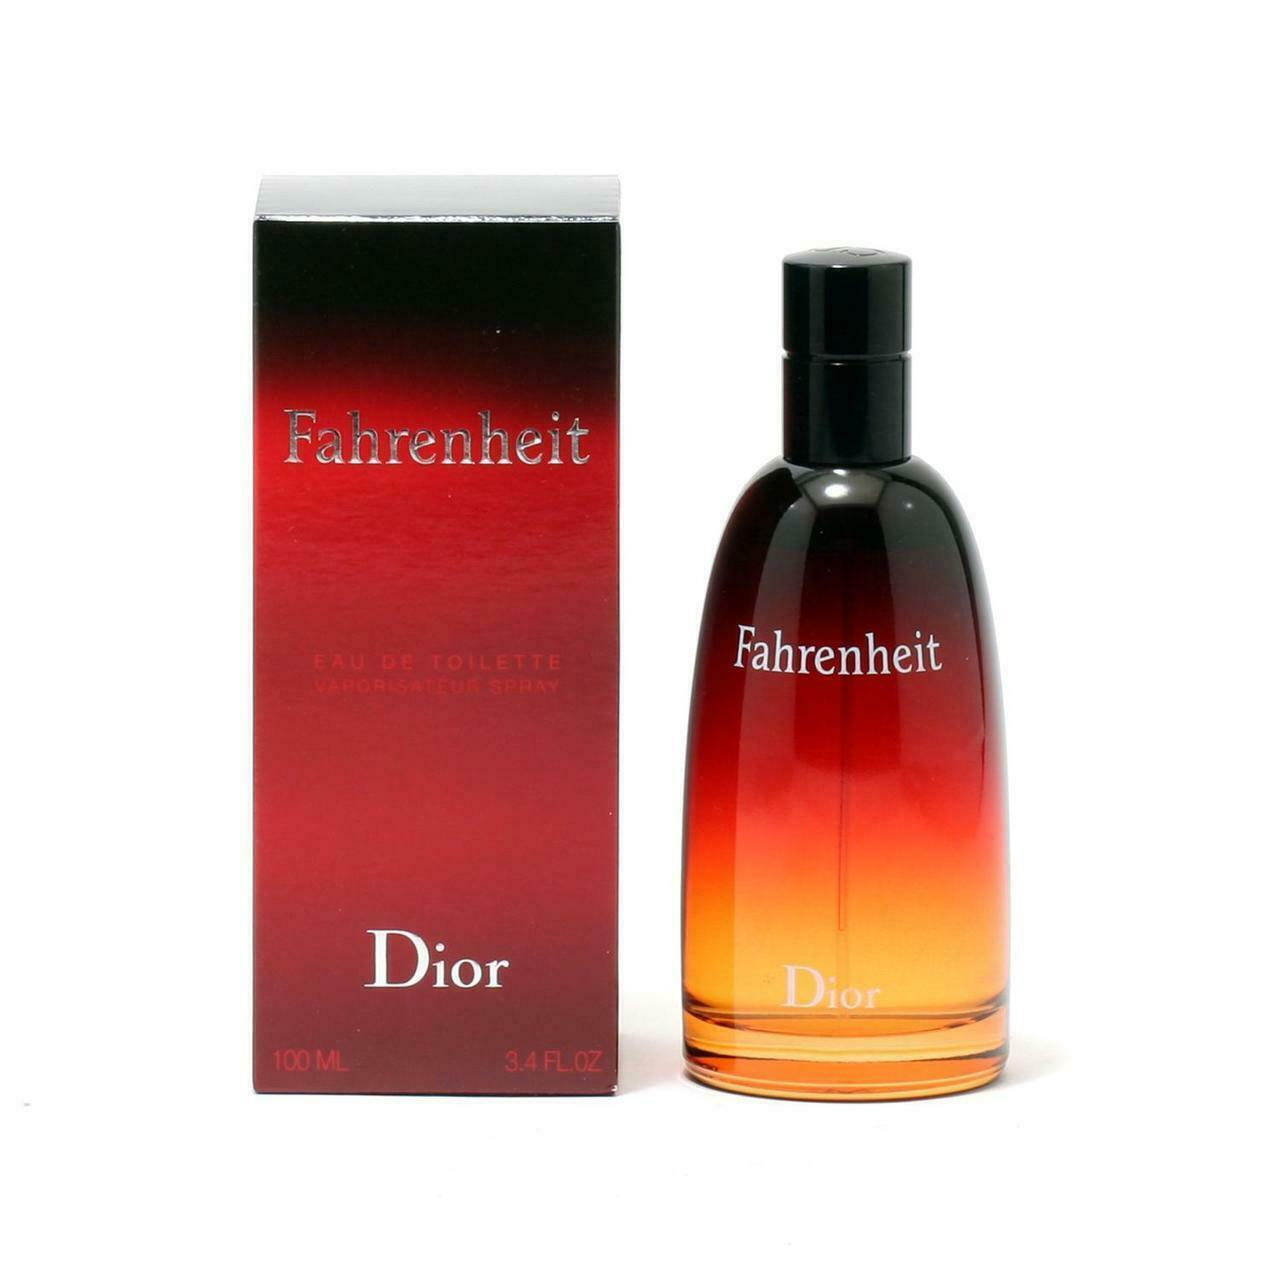 Primary image for Fahrenheit Men By Christian Dior - Edt Spray 3.4 OZ